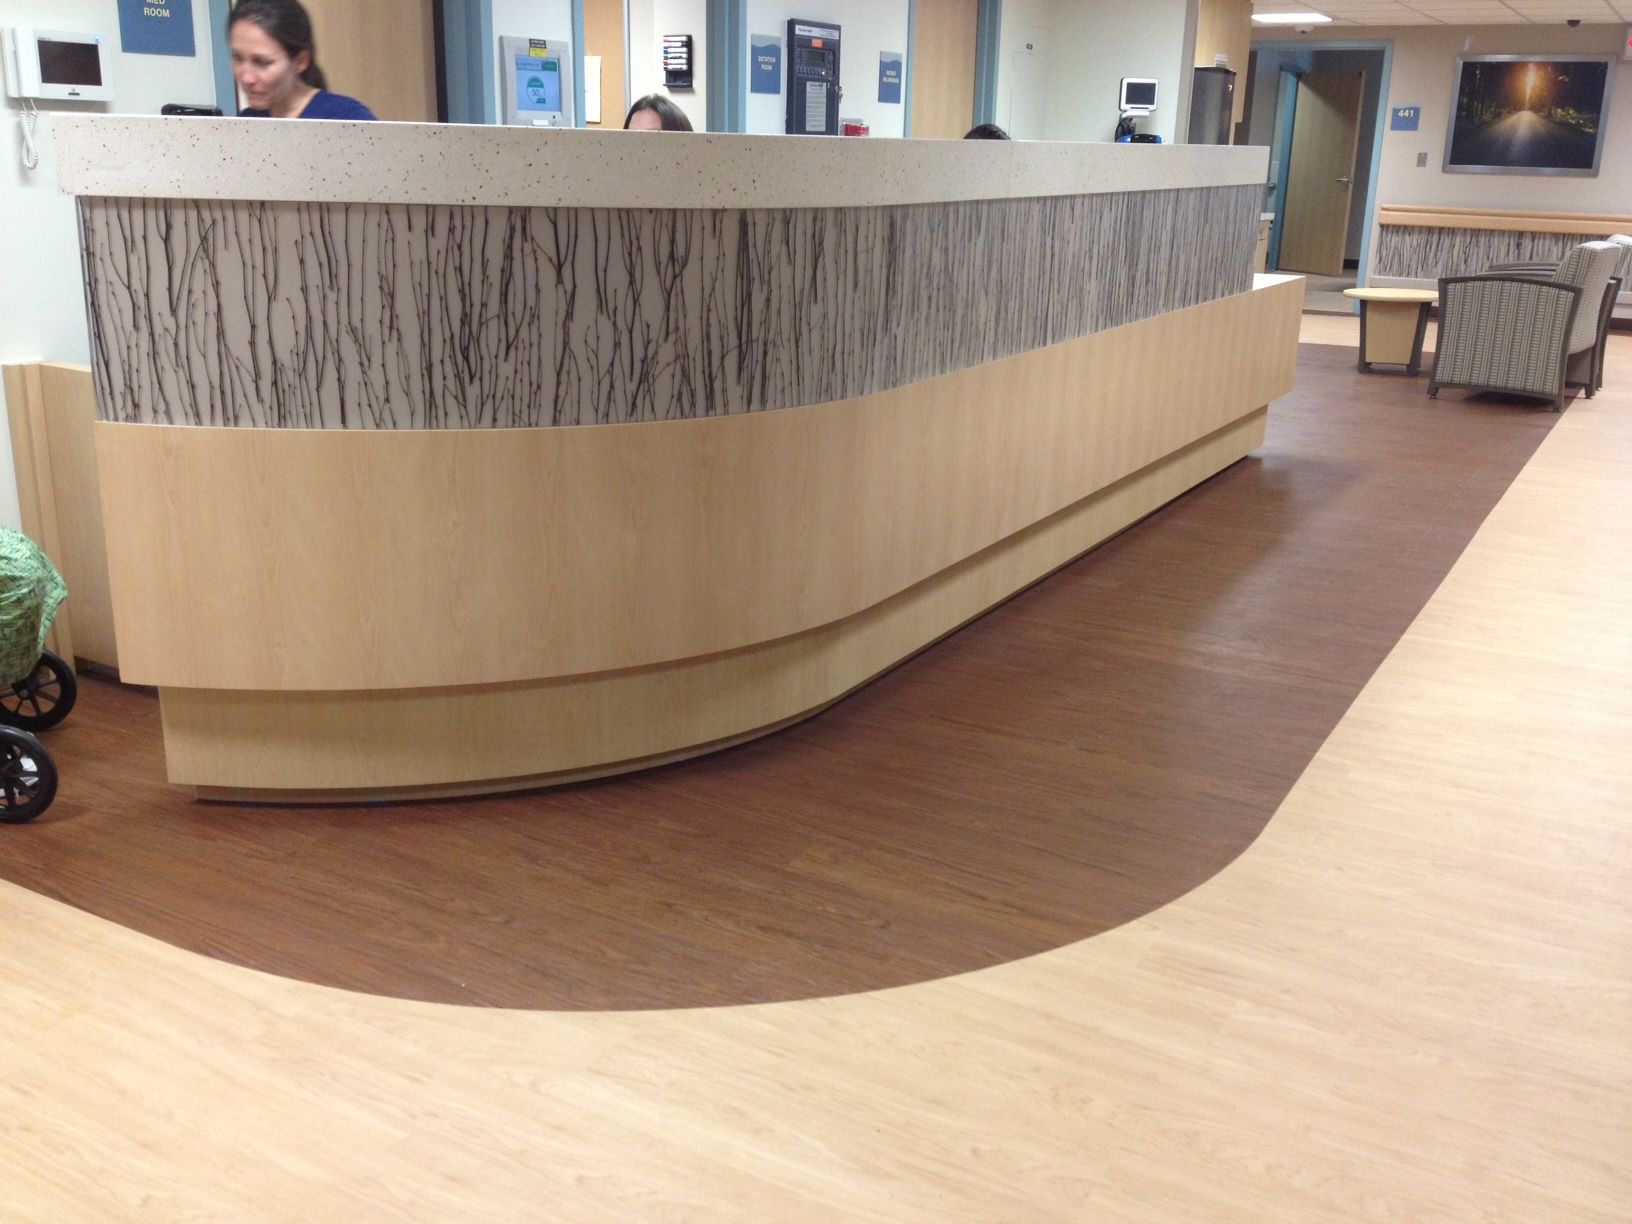 Lumicor Reception Desk | Healthcare | Pinterest | Reception desks ...